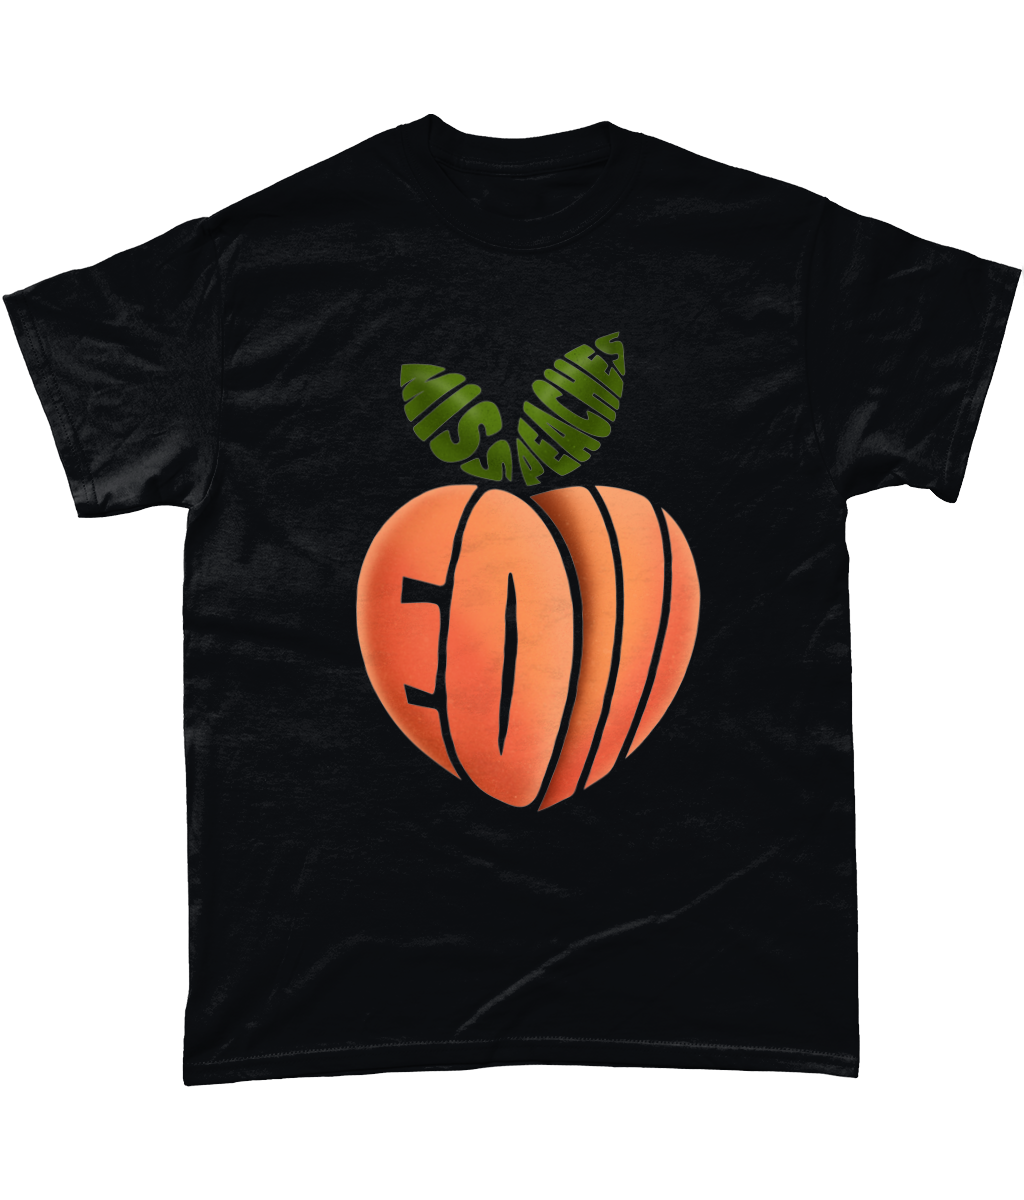 Miss Peaches - EOI T-Shirt - SNATCHED